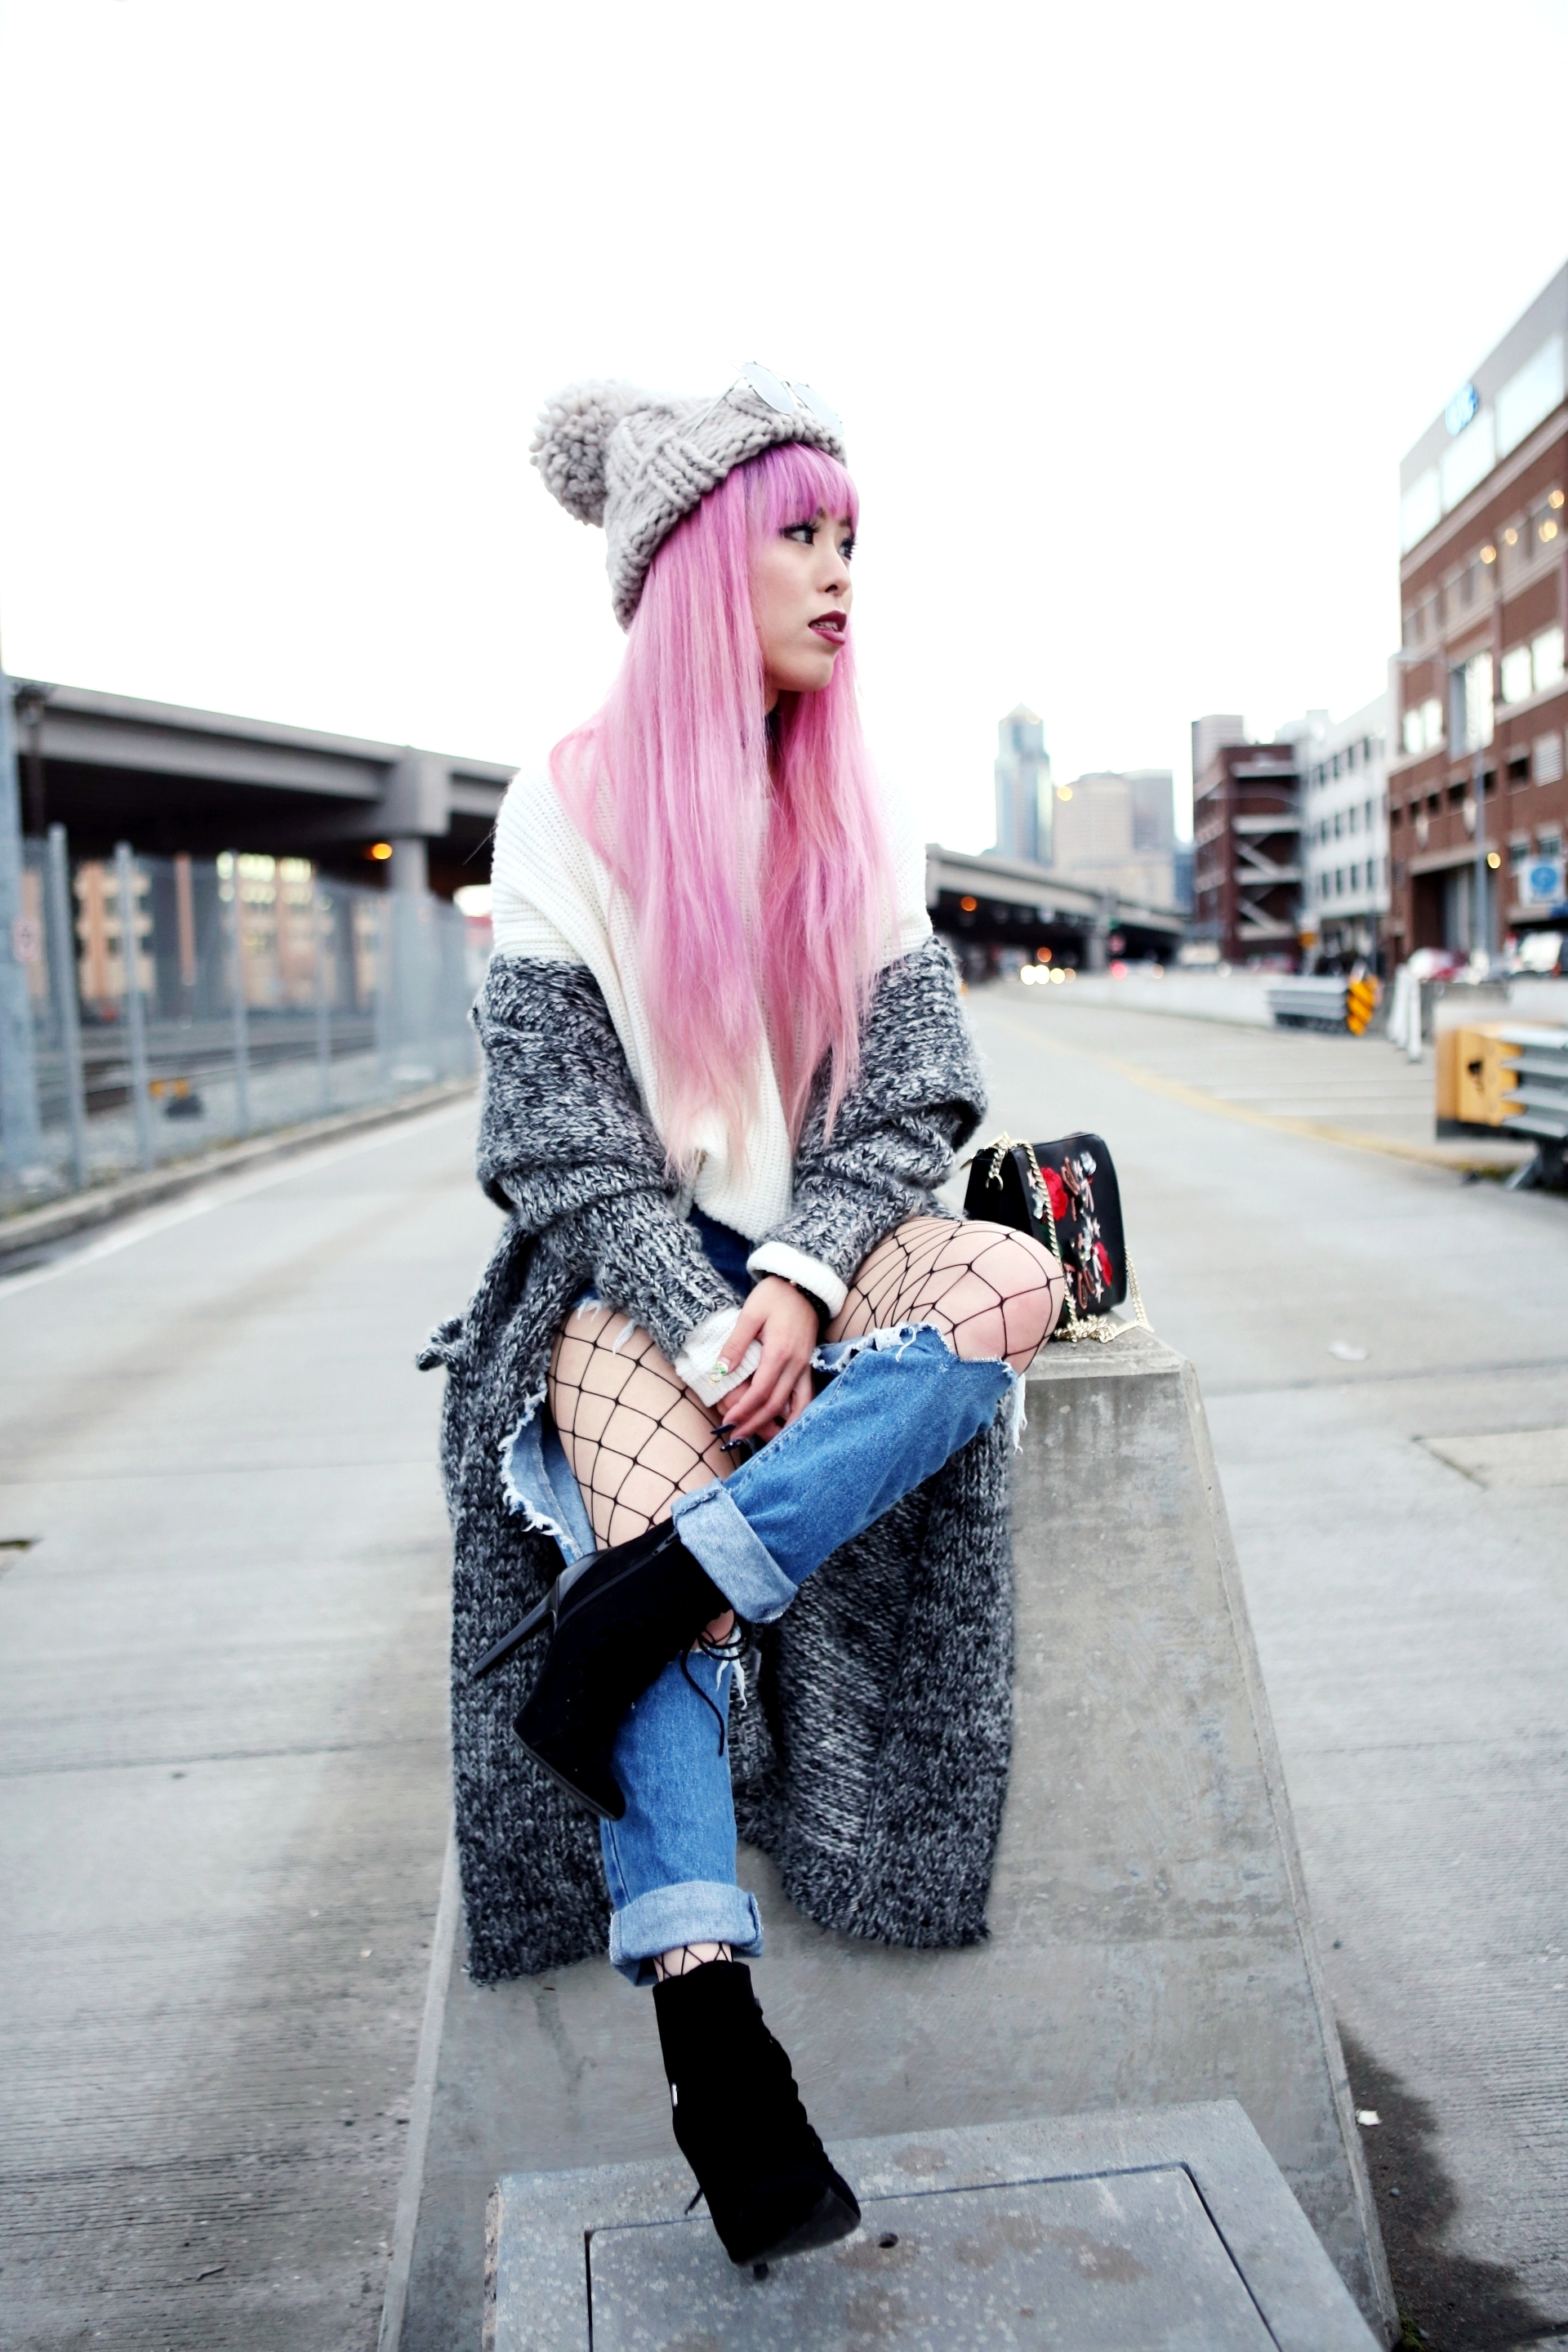 Asos Pom Pom Chunky Beanie_Forever 21 Sweater & Distressed Boyfriend Jeans_ASOS Fishnet Tights_Zara Star Velvet Chocker & Black Lace Up Boots_Gray Chunky Long Cardigan_Free People Mirrored Sunglasses_Pink Hair_Seattle Fashion Style Blogger_Japanese-Aika's Love Closet